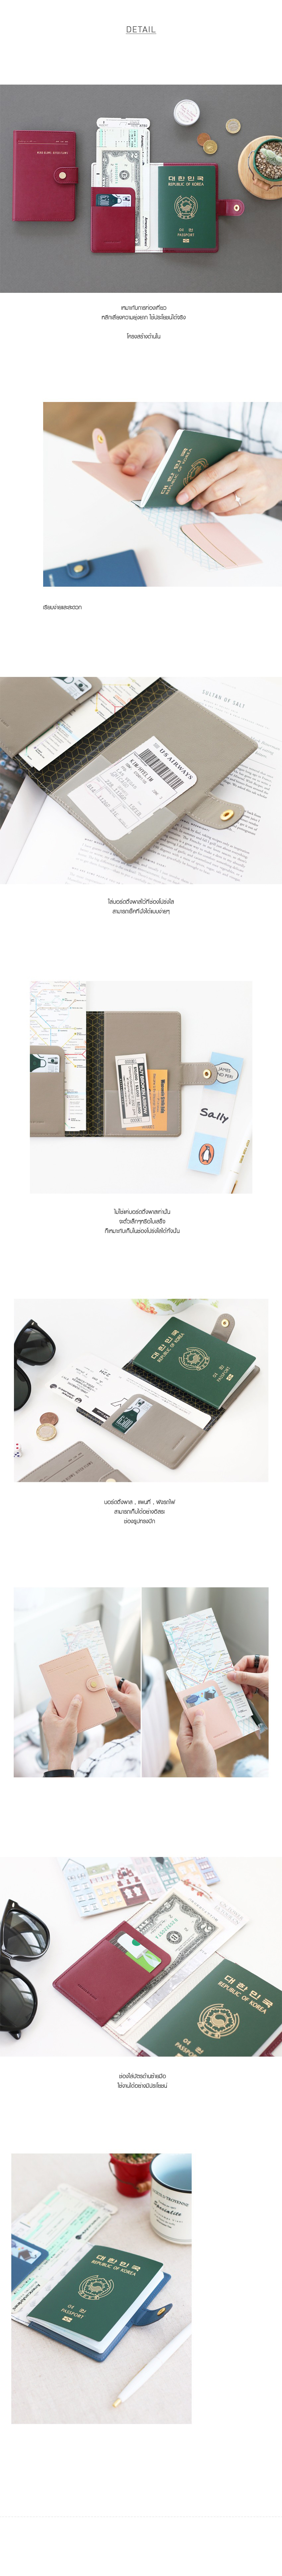 snap-passport-case-4.jpg